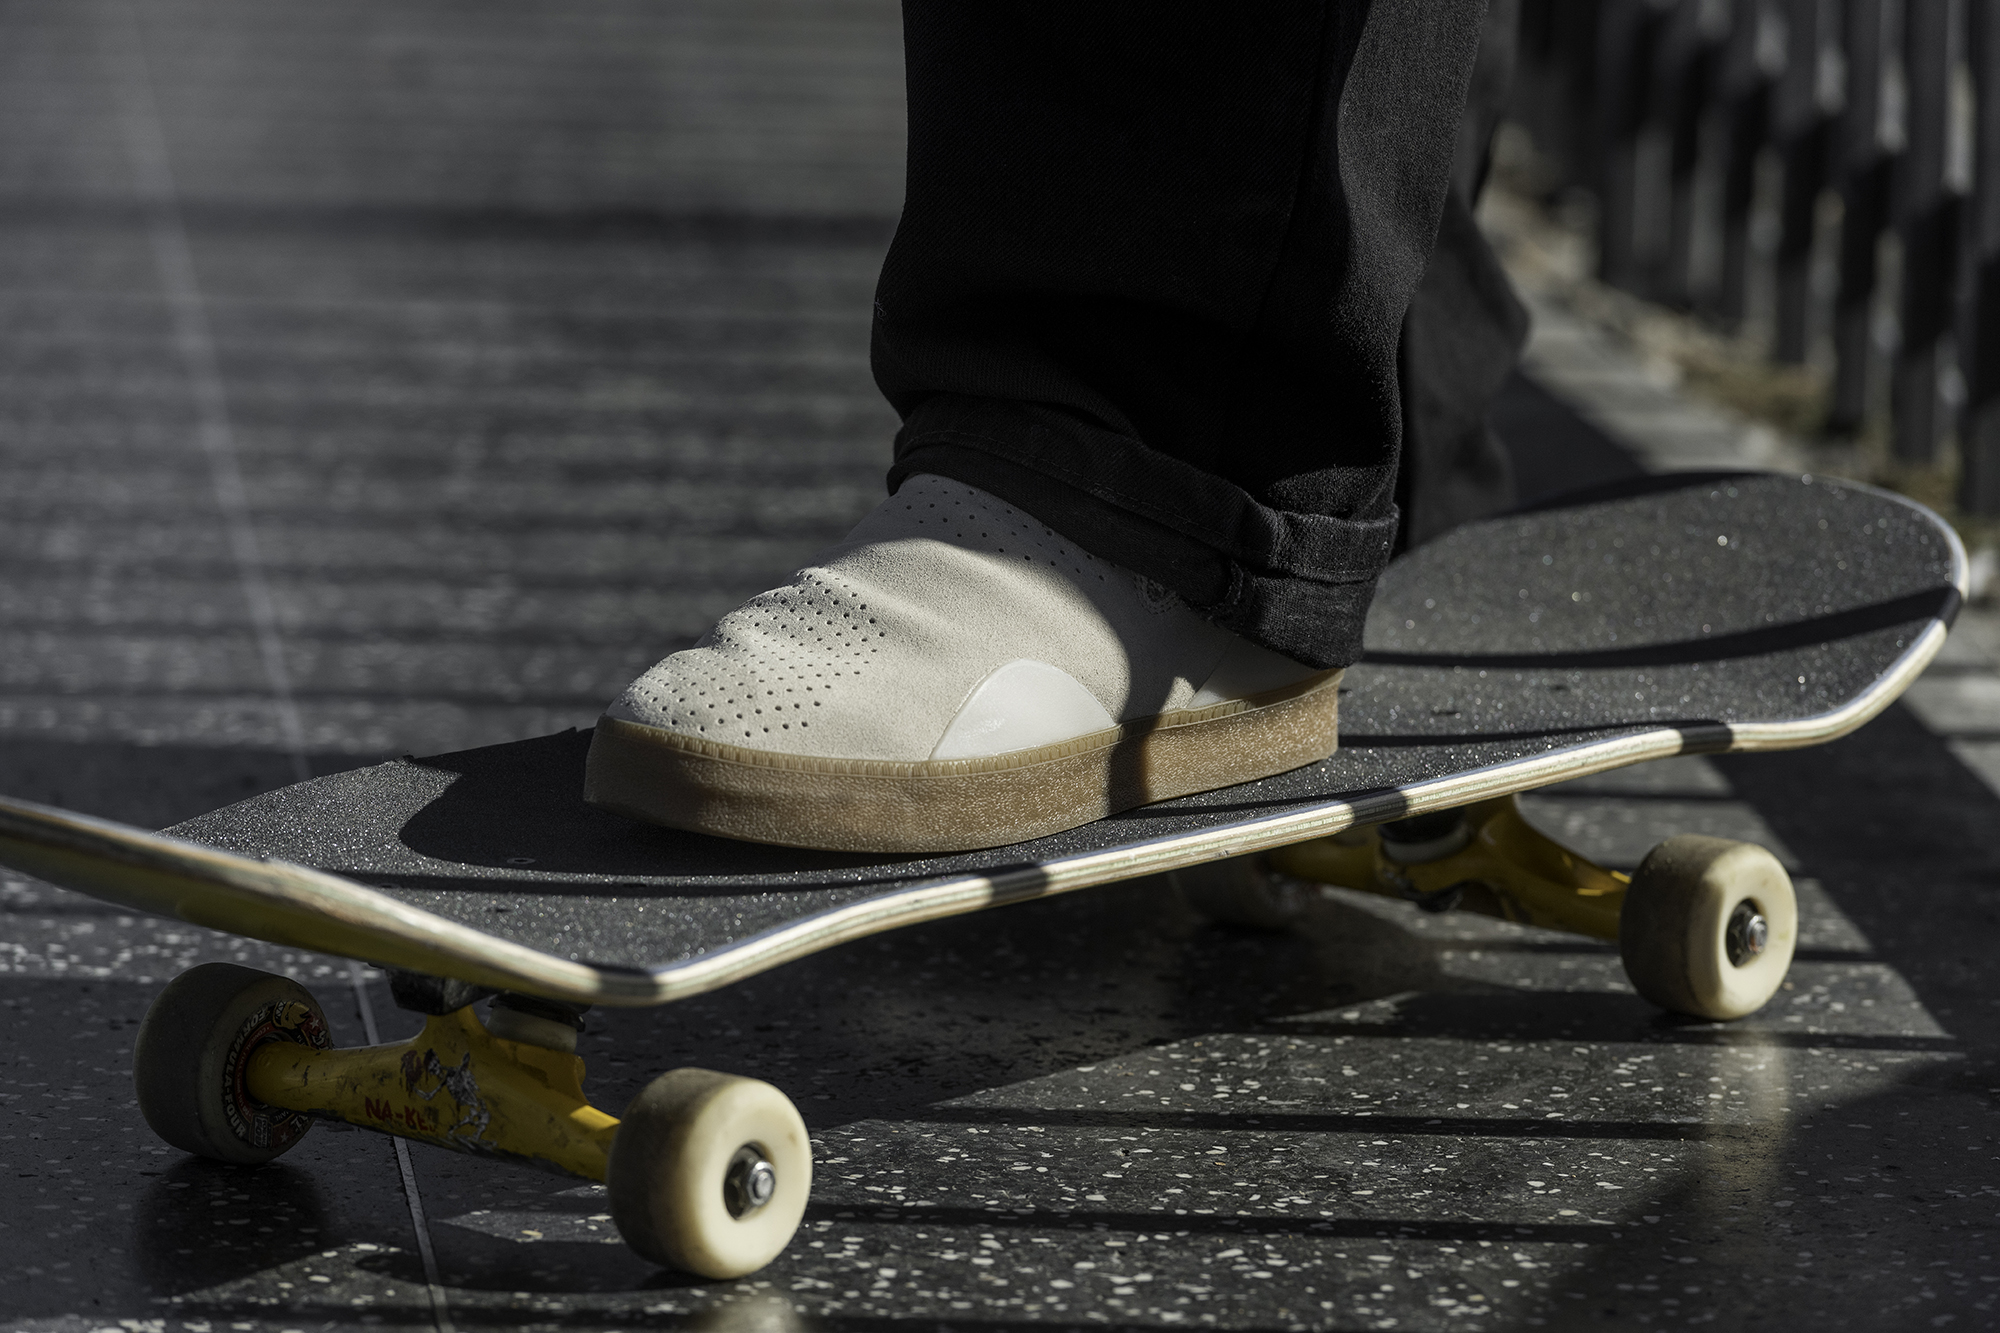 new style 663e1 5e6d9 Alongside skateboarder input, the design process was also driven by  enhanced aesthetics, premium materials, and new design lines.